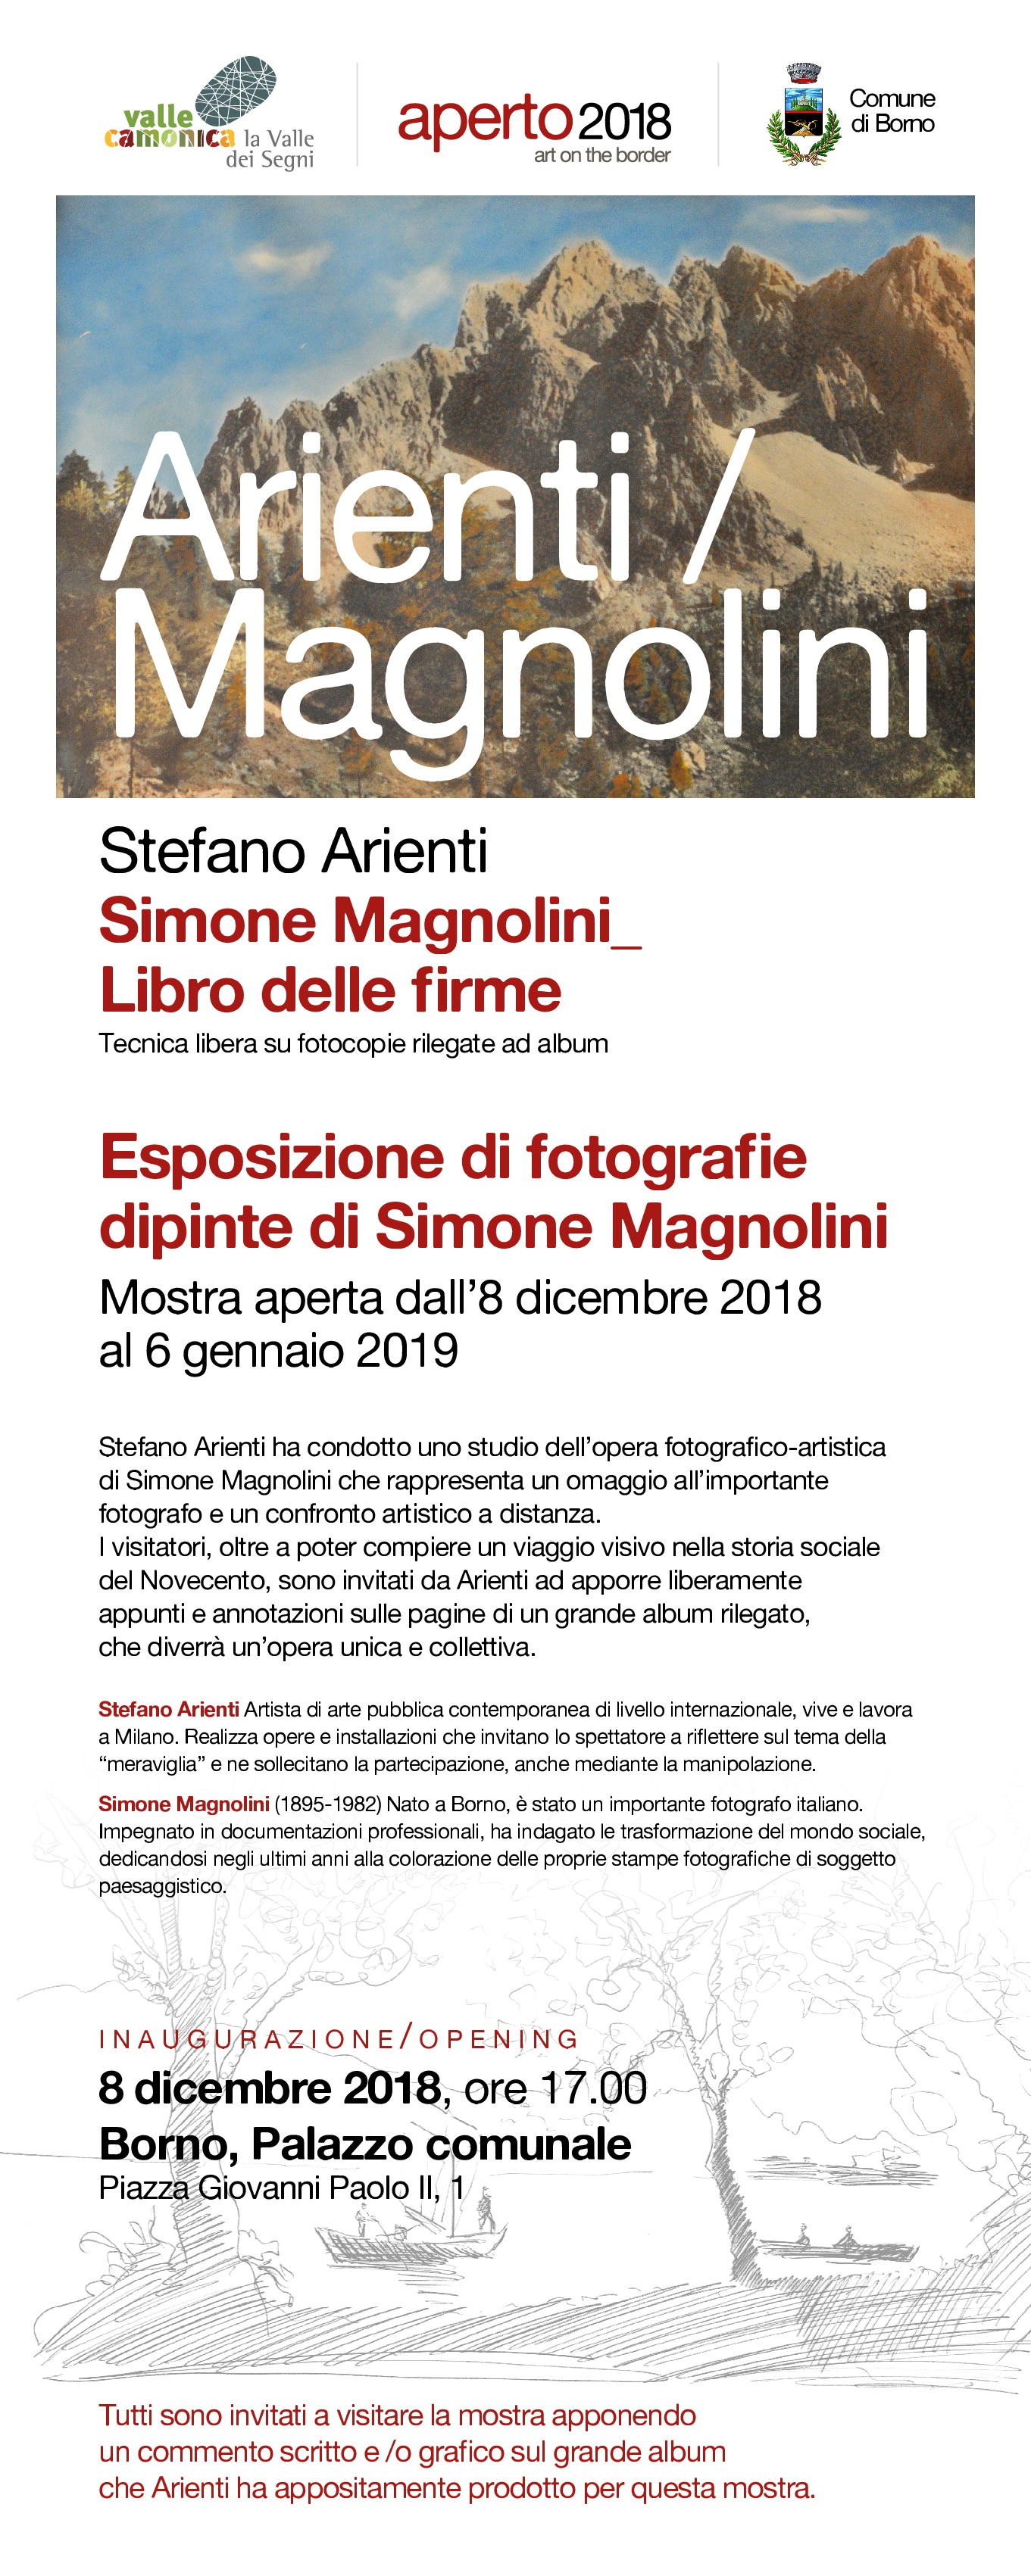 locandina aperto2018 art on the border Stefano orient Simone magnolia born distretto culturale valle camonica